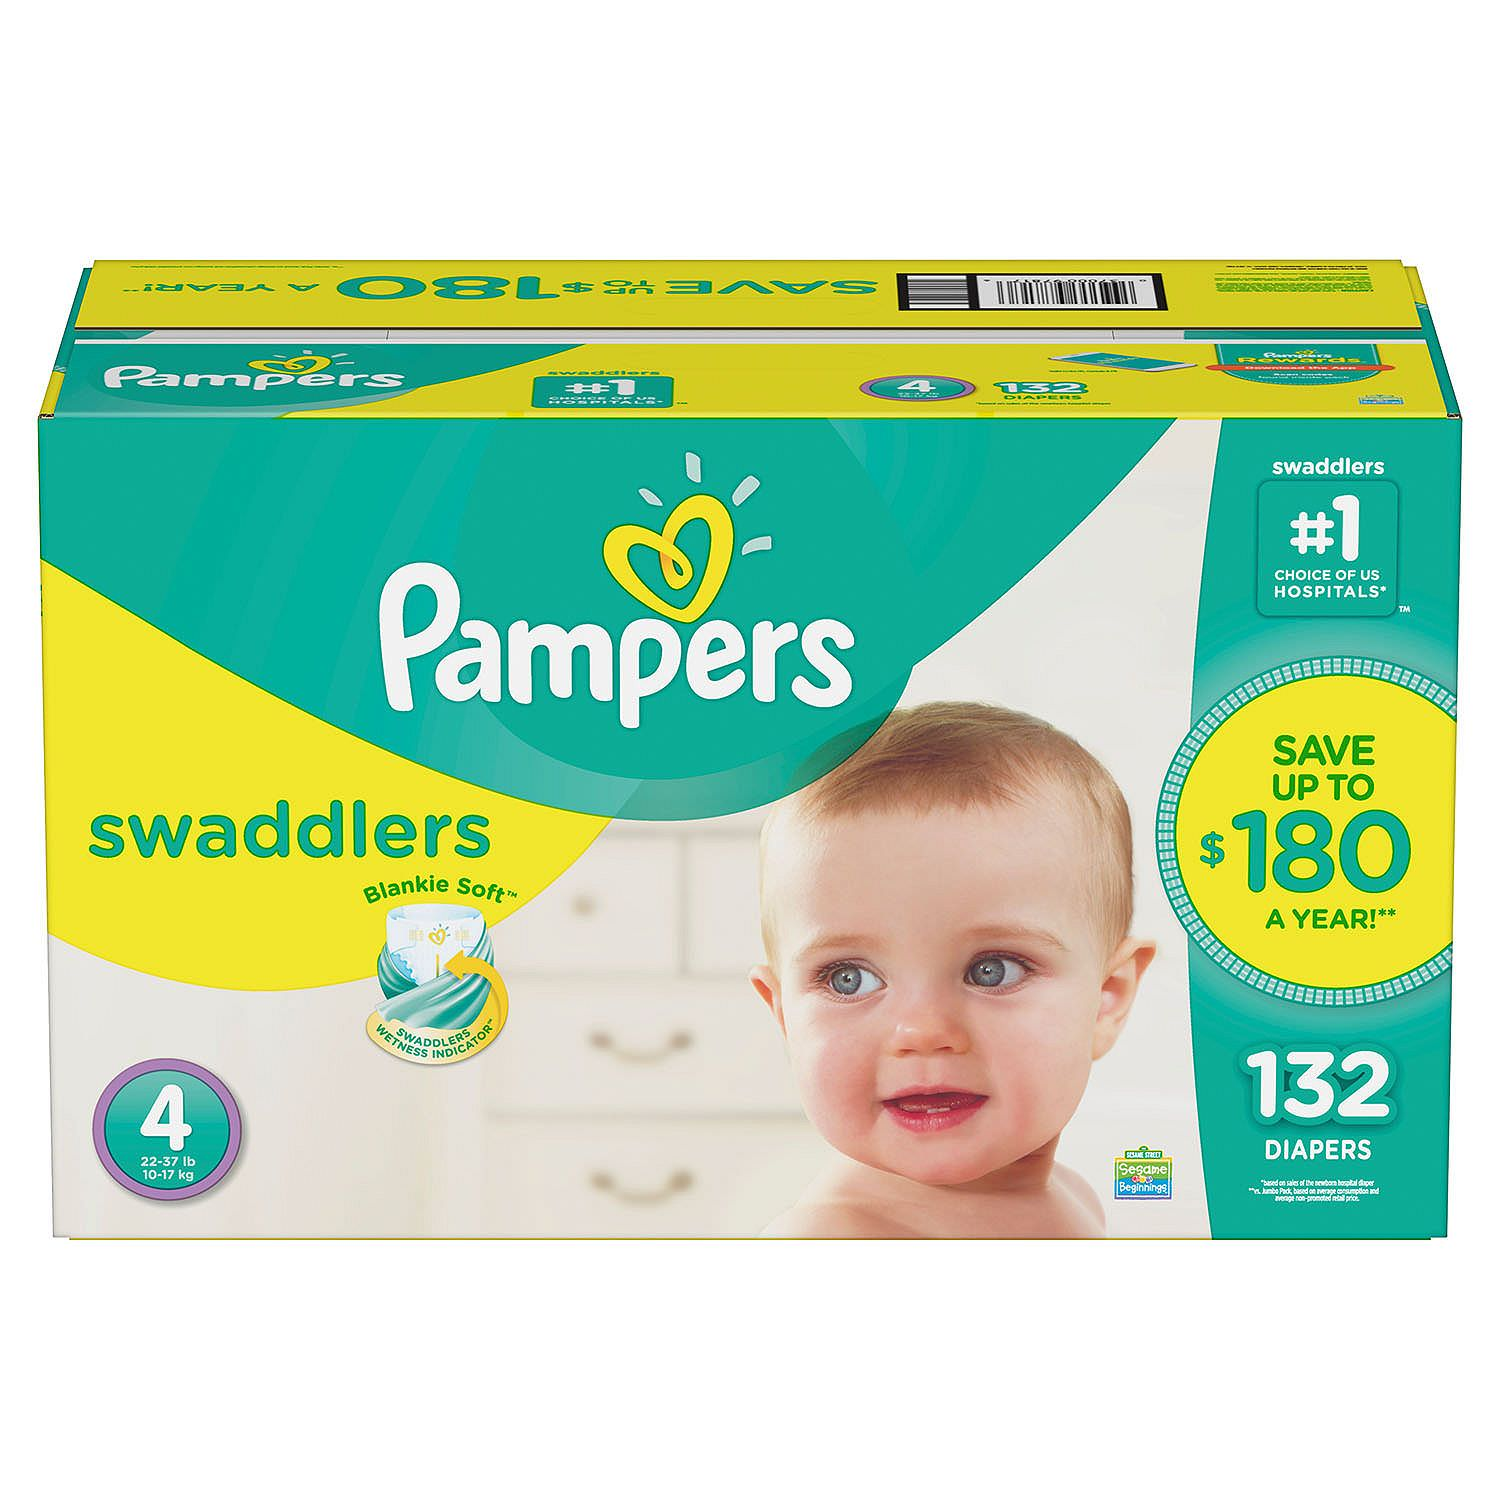 Pampers Swaddlers Diapers Size 4 -132 ct. (22-37 lb.)